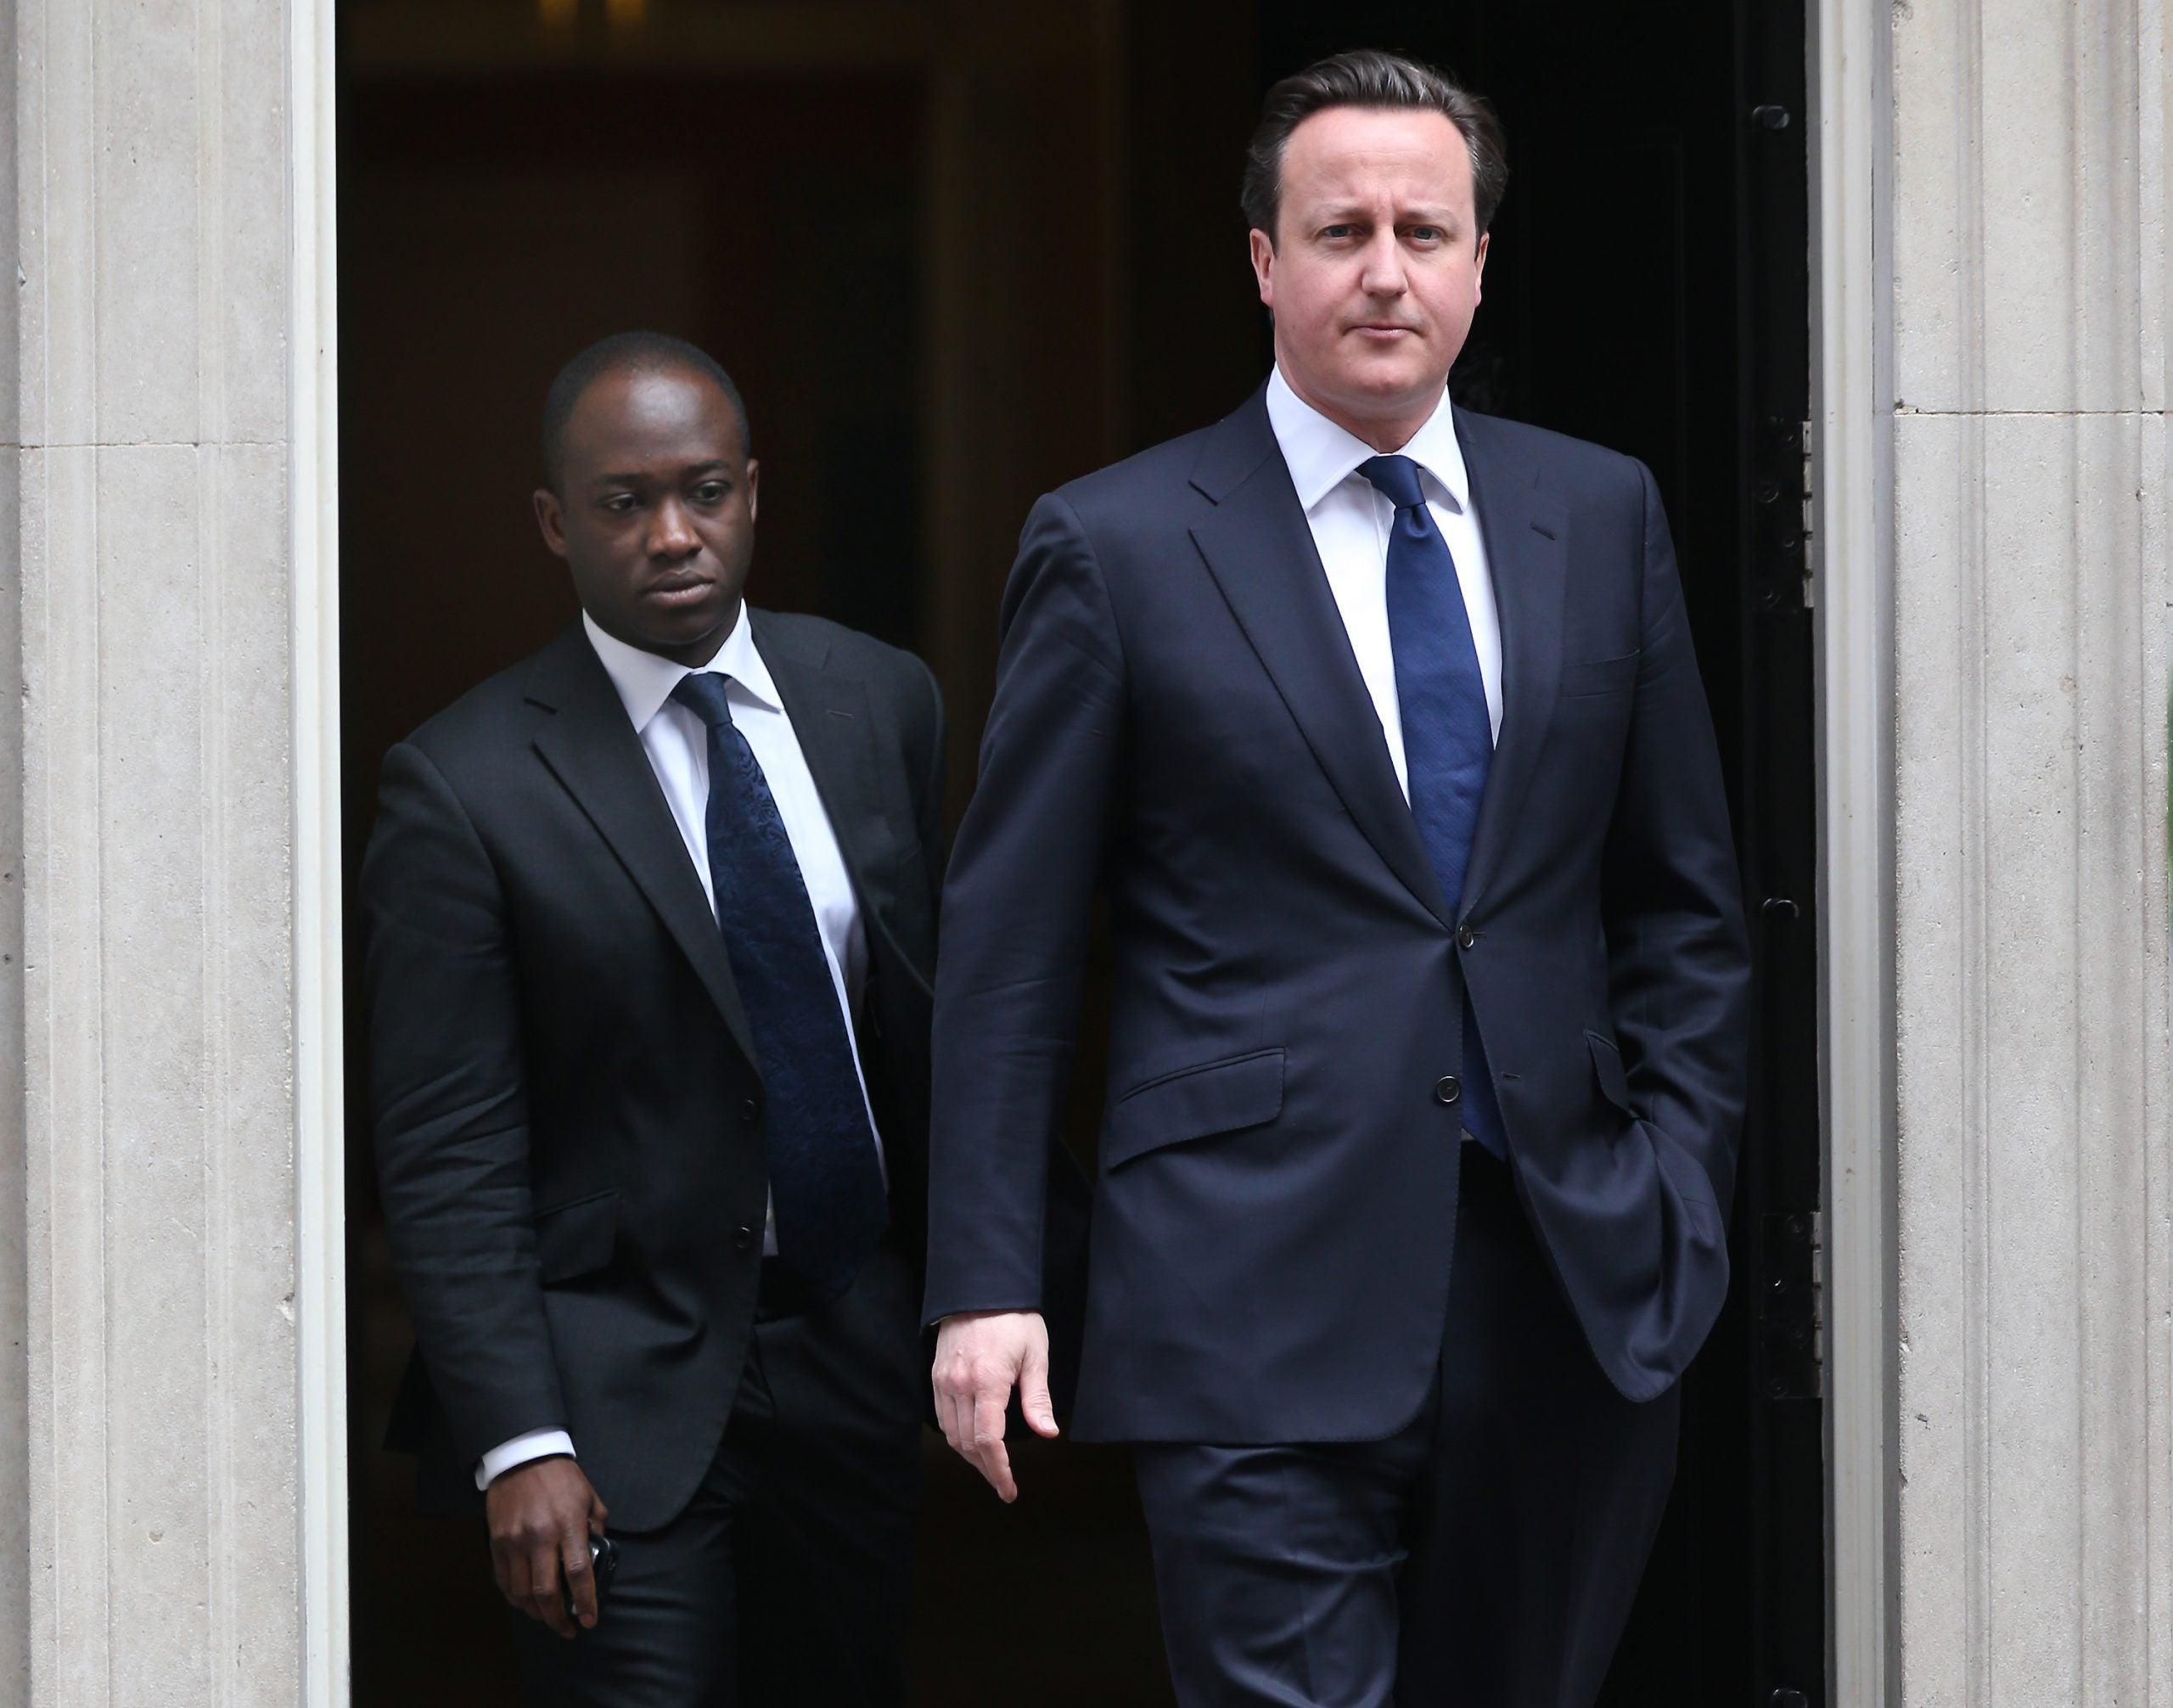 Sam Gyimah's resignation means that a People's Vote could well happen